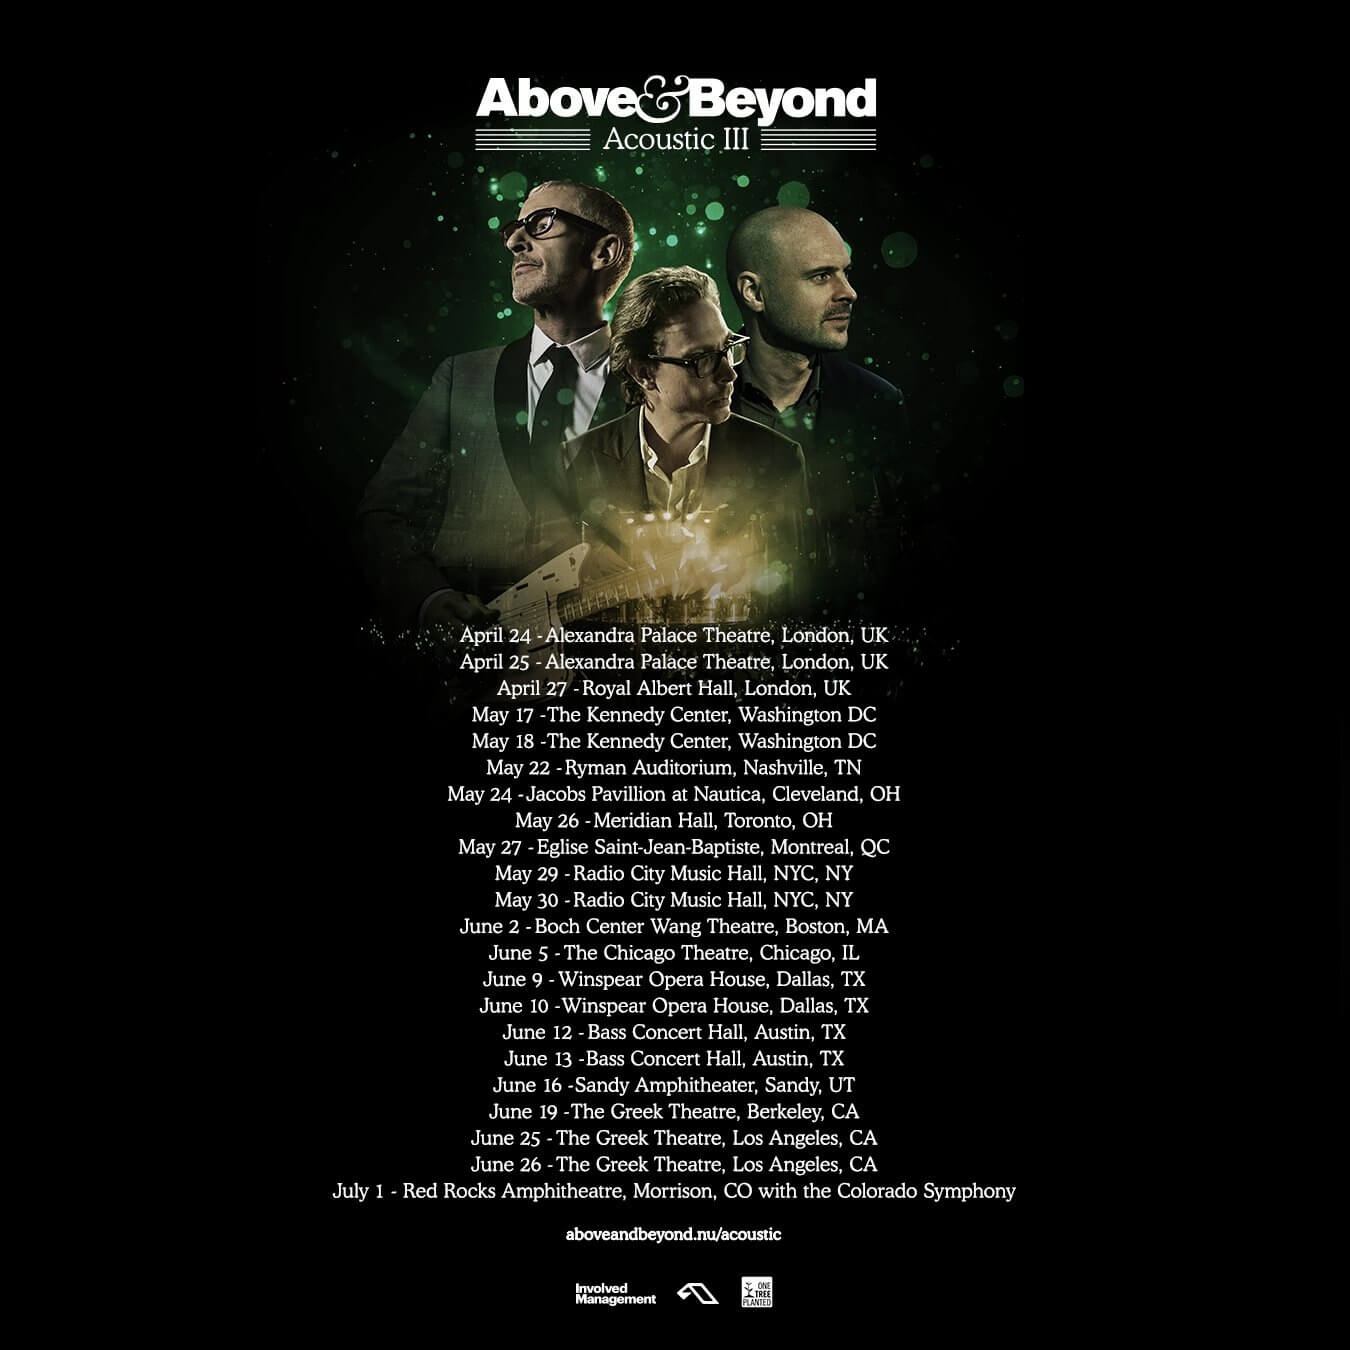 above-and-beyond-acoustic-3-tour-2020-oz-edm